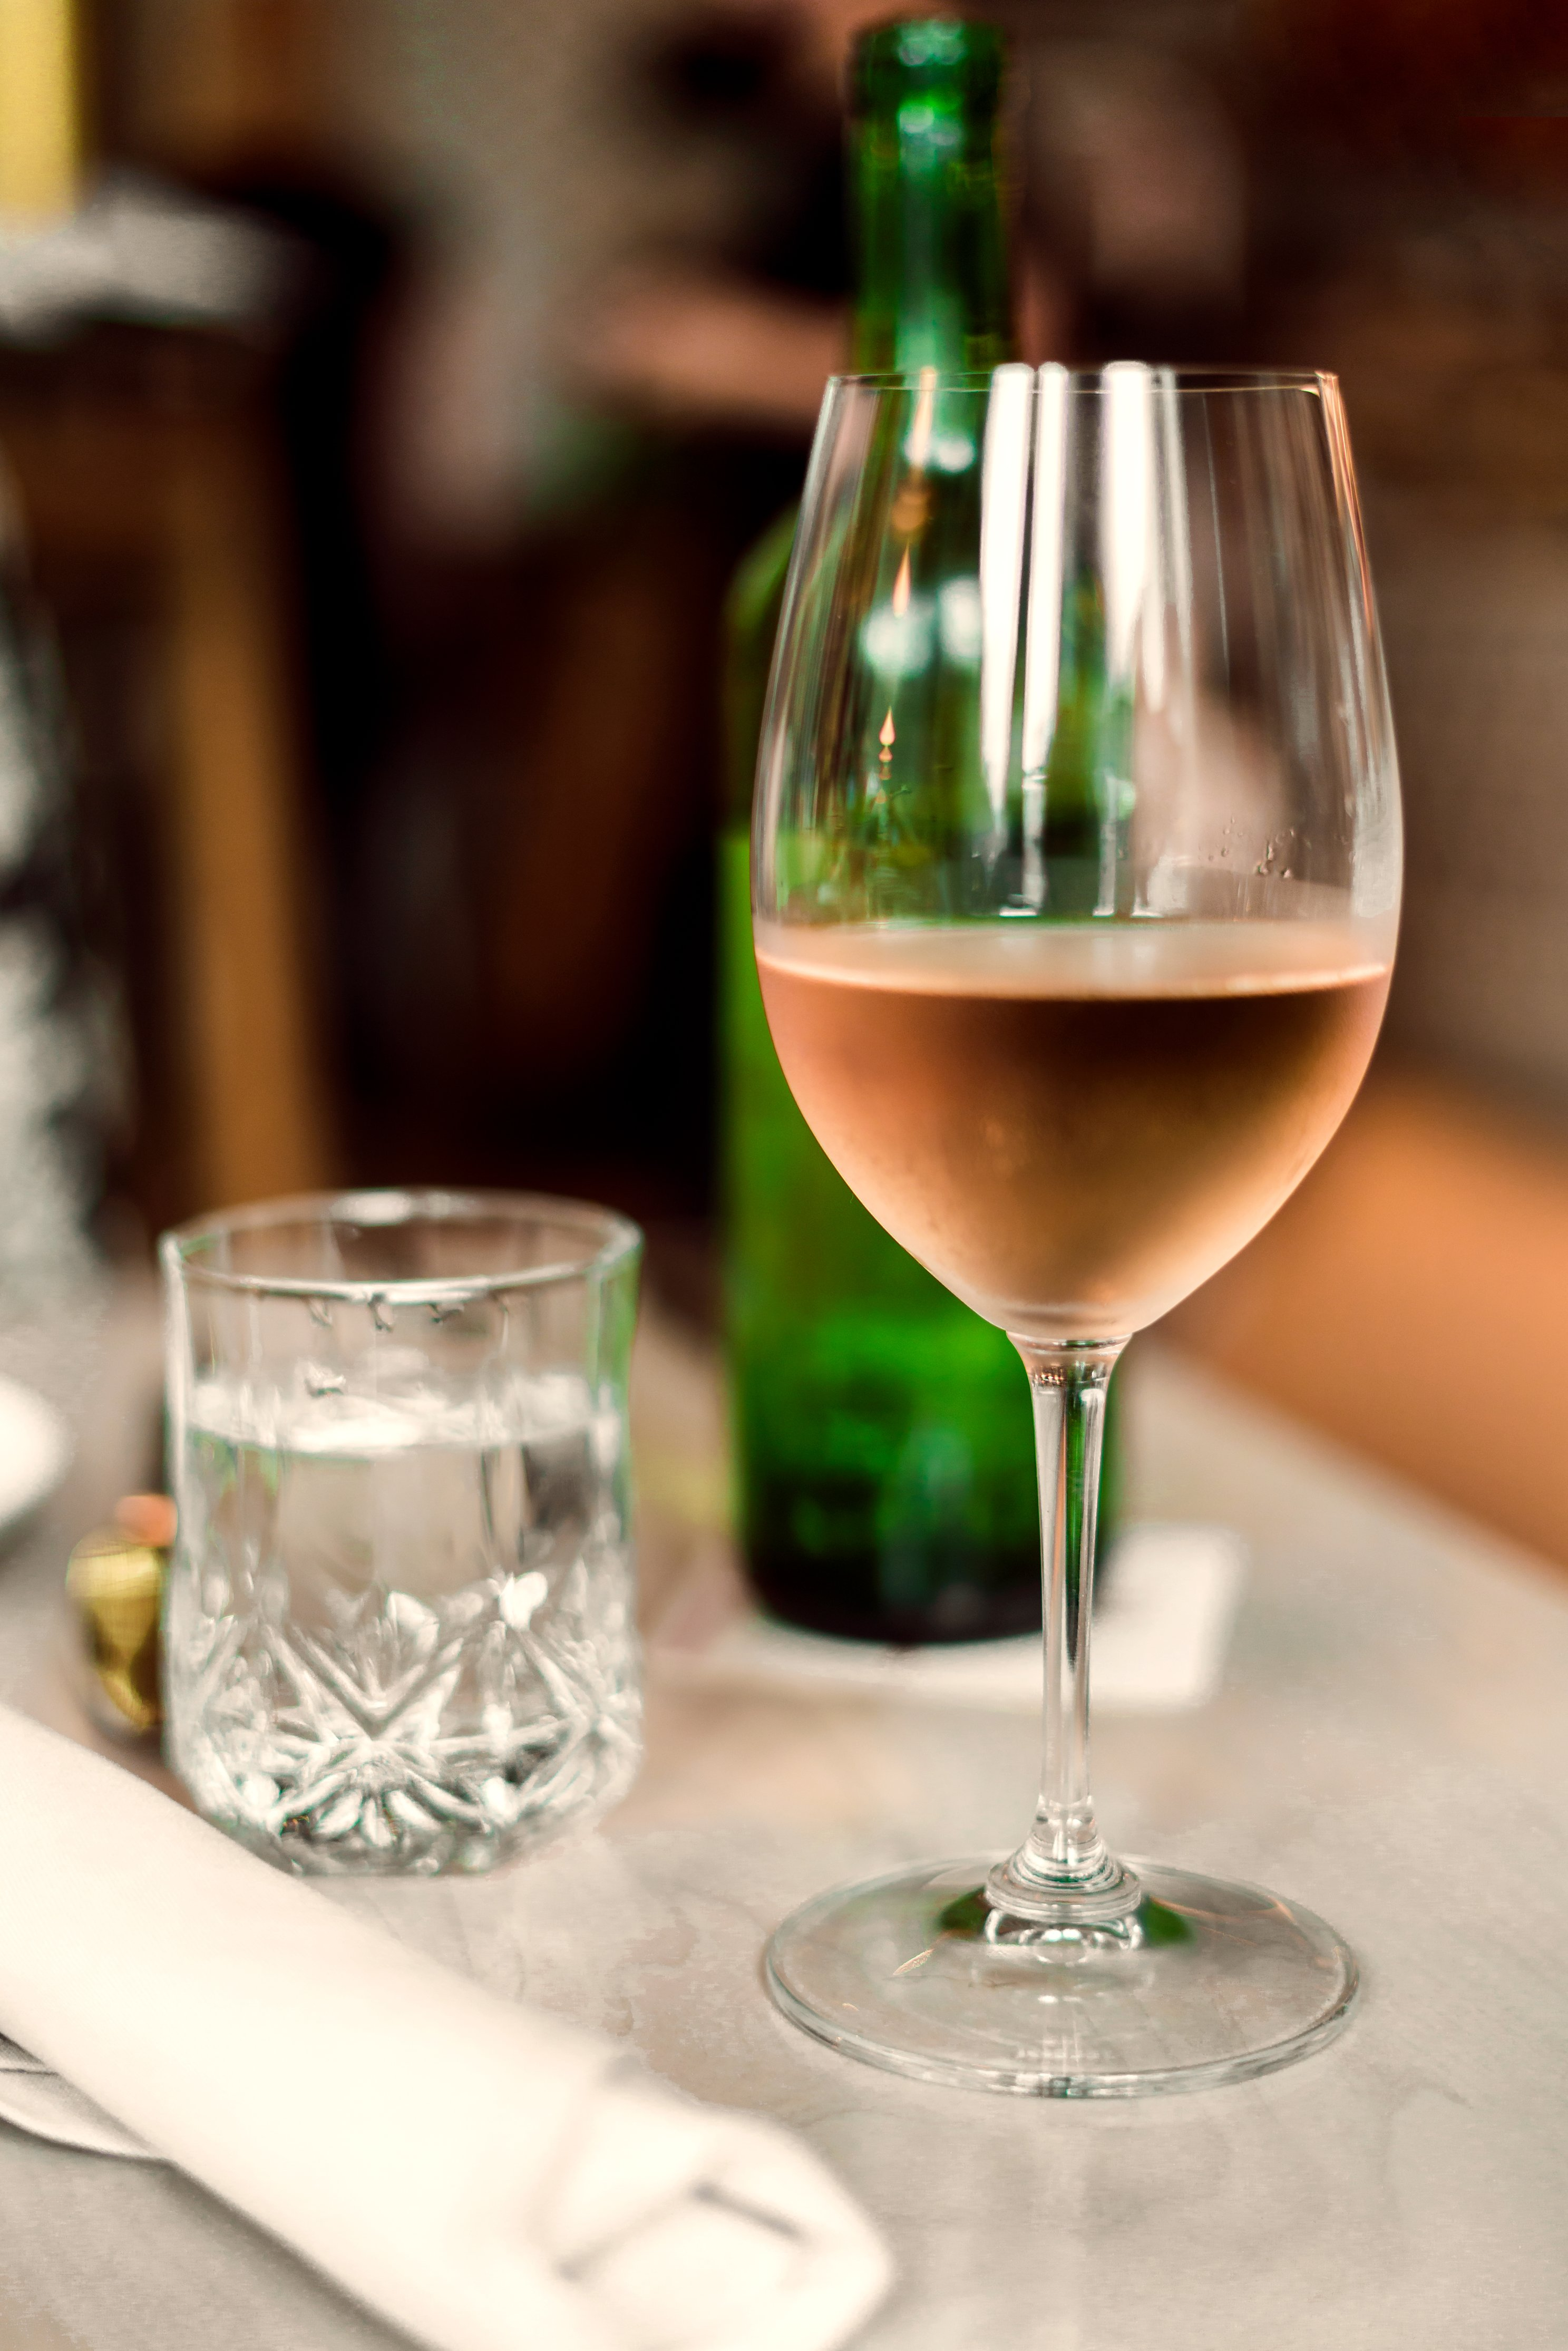 rose-wine-on-table_4460x4460